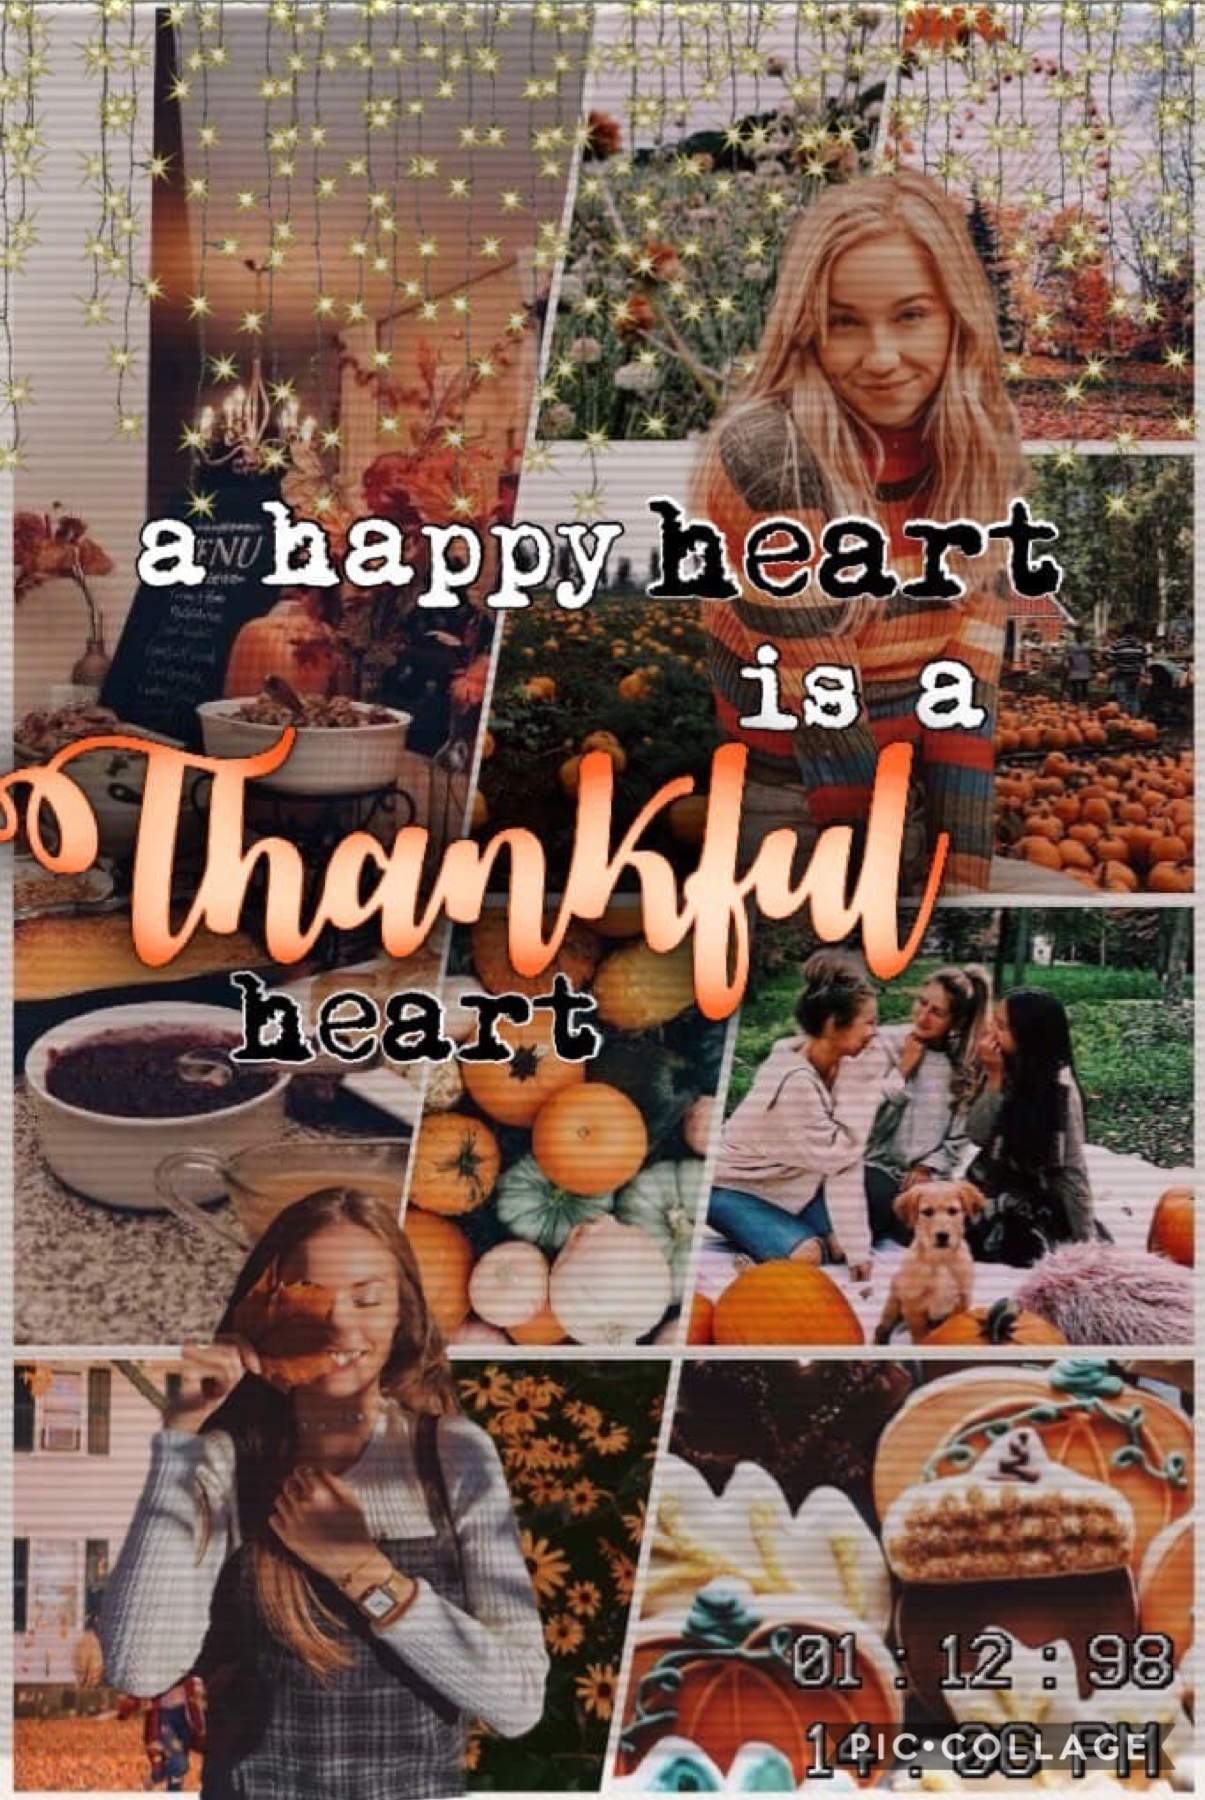 made for -sparklydiamonds-'s contest! happy thanksgiving💛